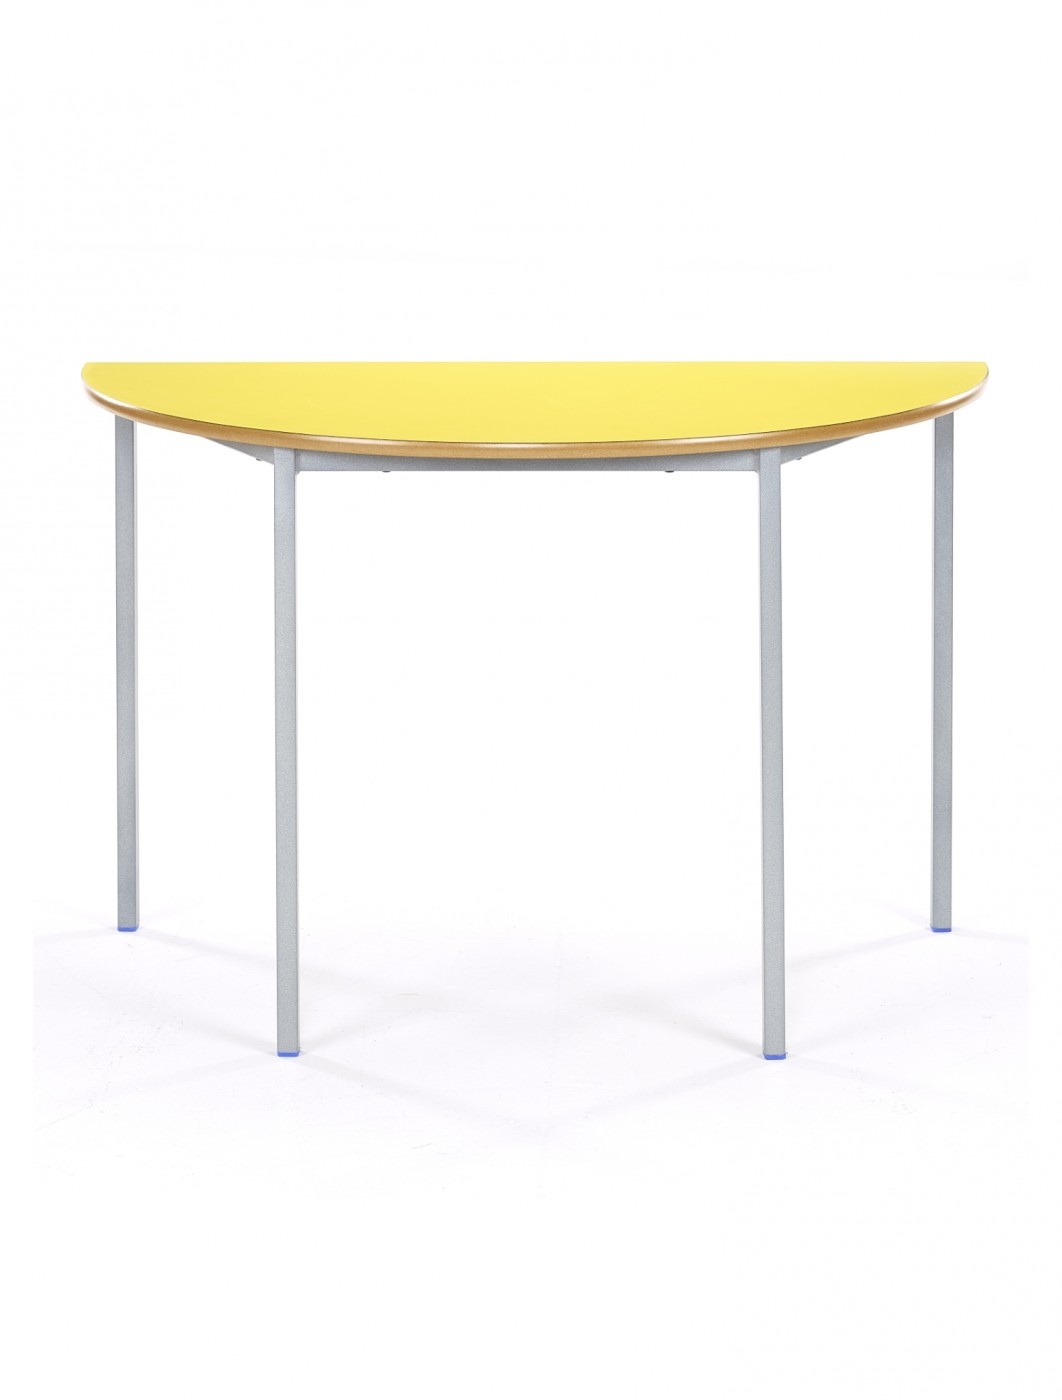 group products fast classroom table edge index track tables essex frame chunky mdf